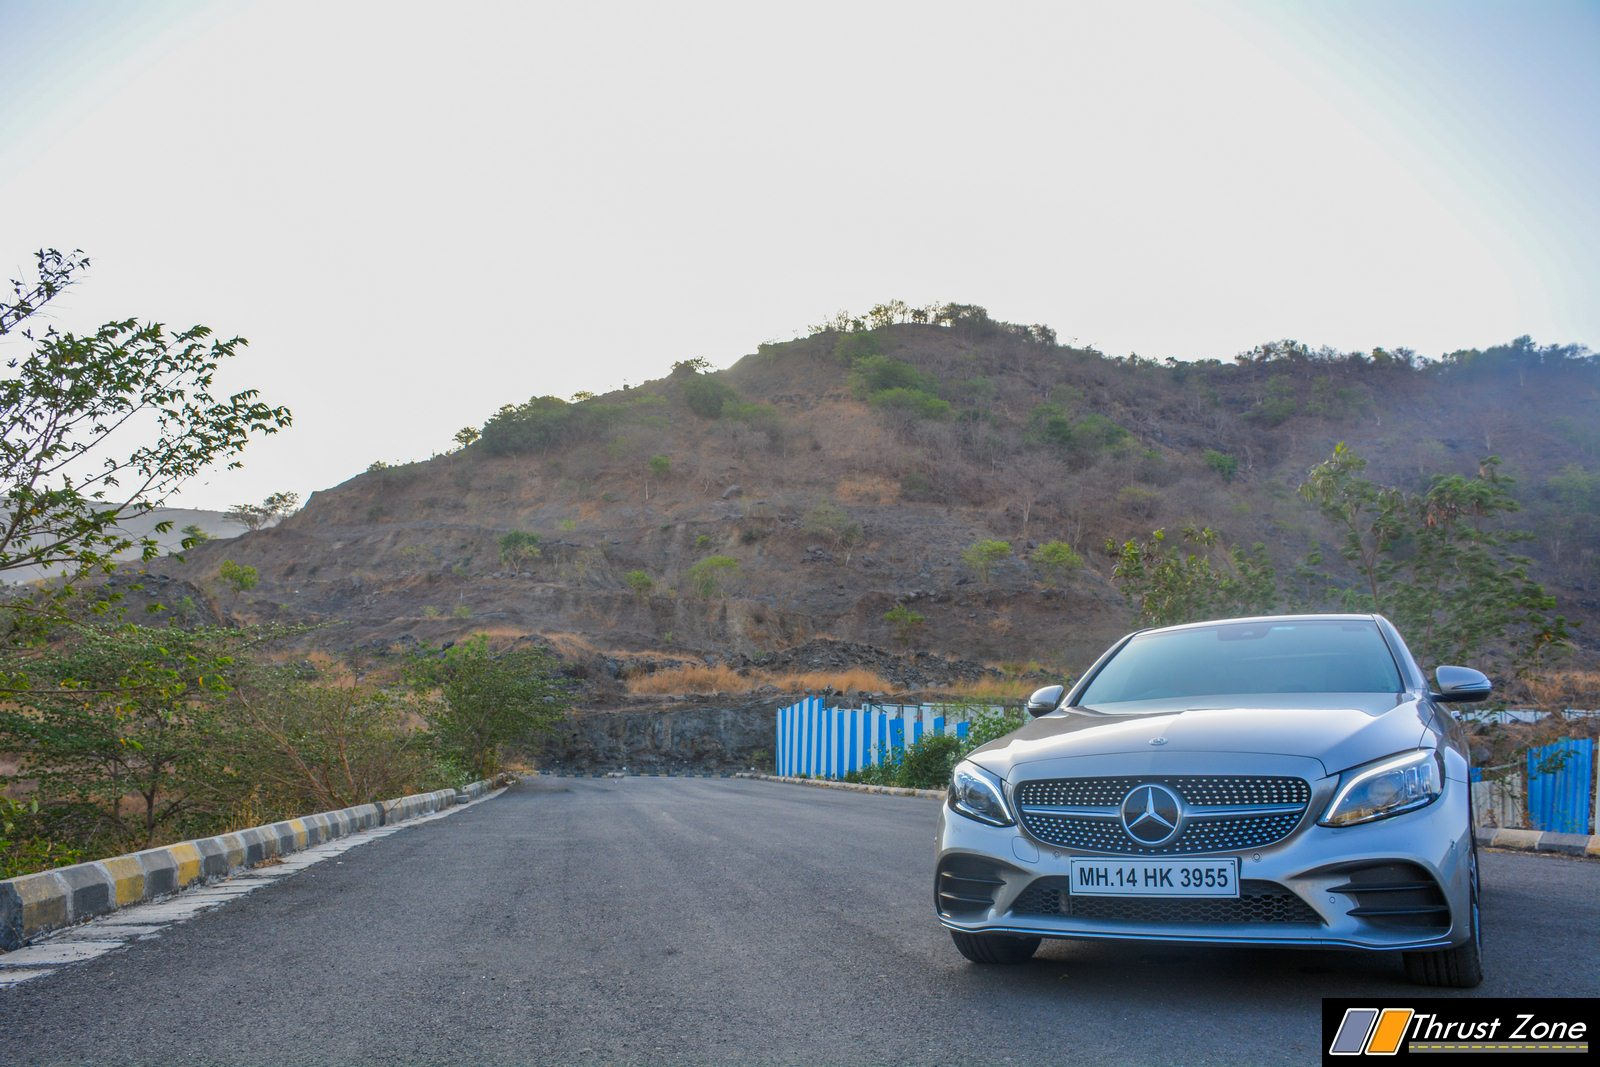 https://www.thrustzone.com/wp-content/uploads/2019/05/2019-Mercedes-C300d-Diesel-India-Review-28.jpg